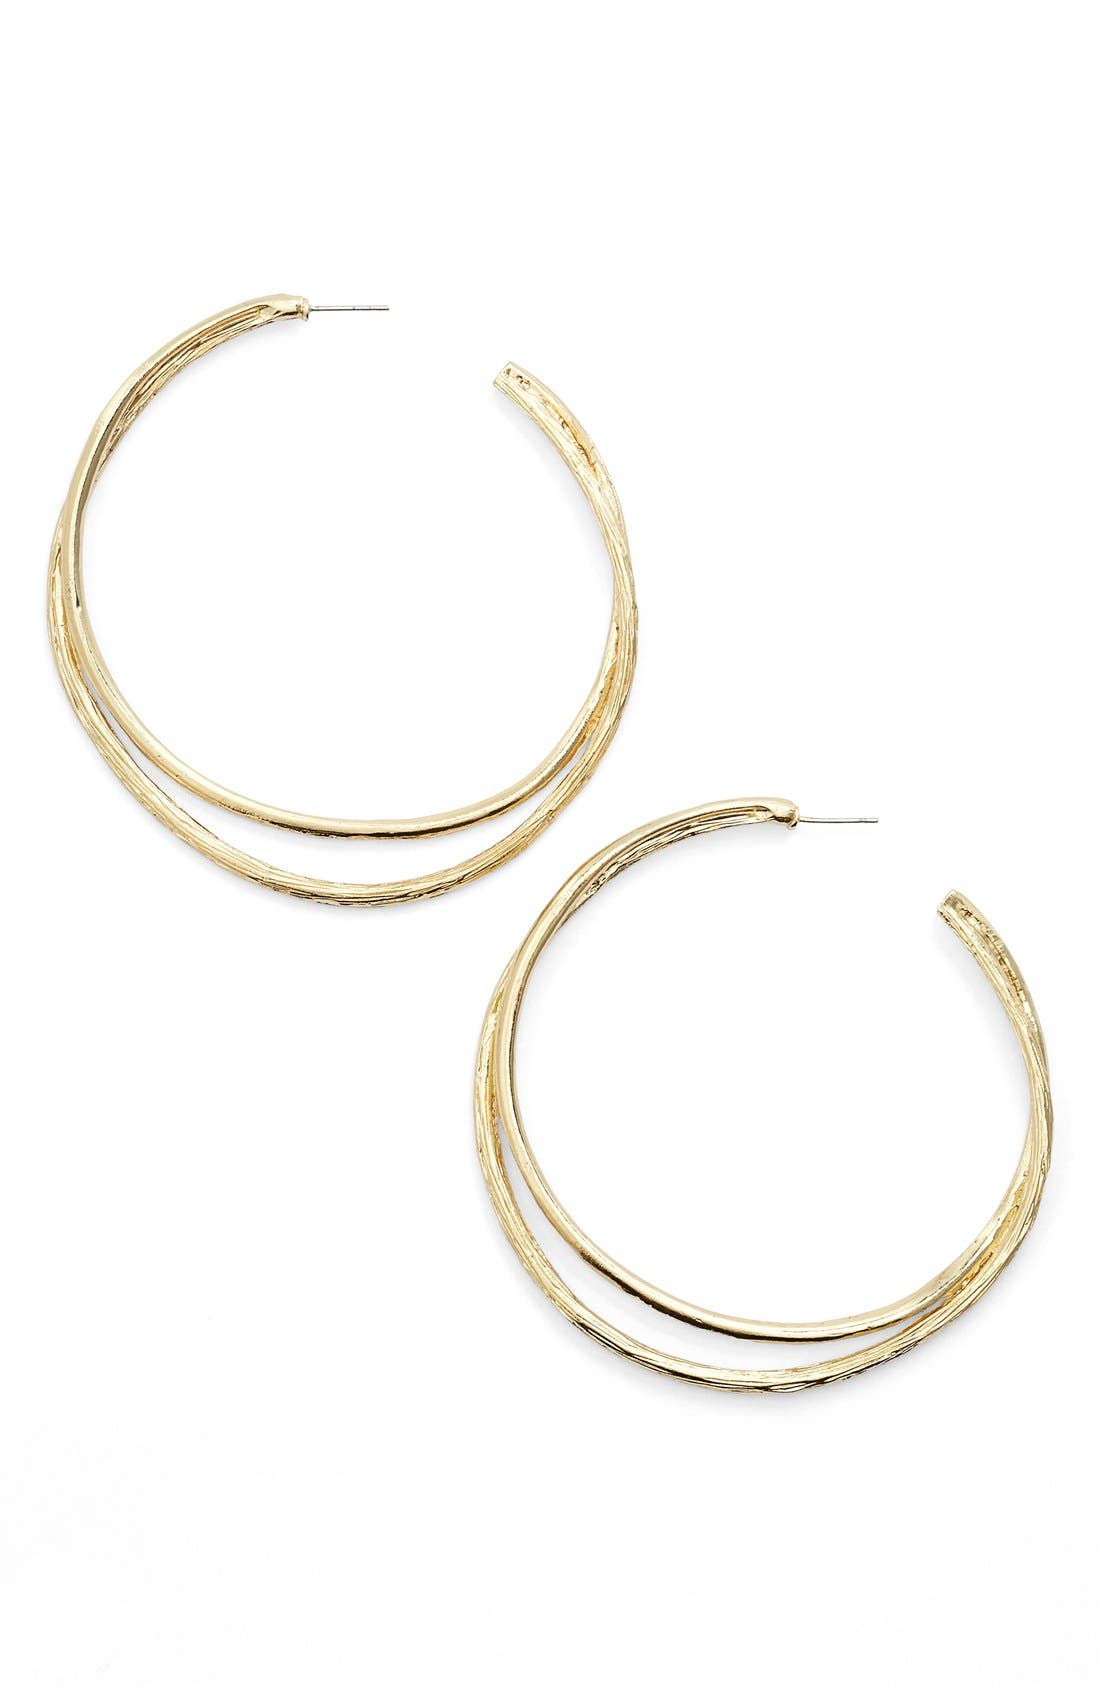 KARINE SULTAN Split Hoop Earrings